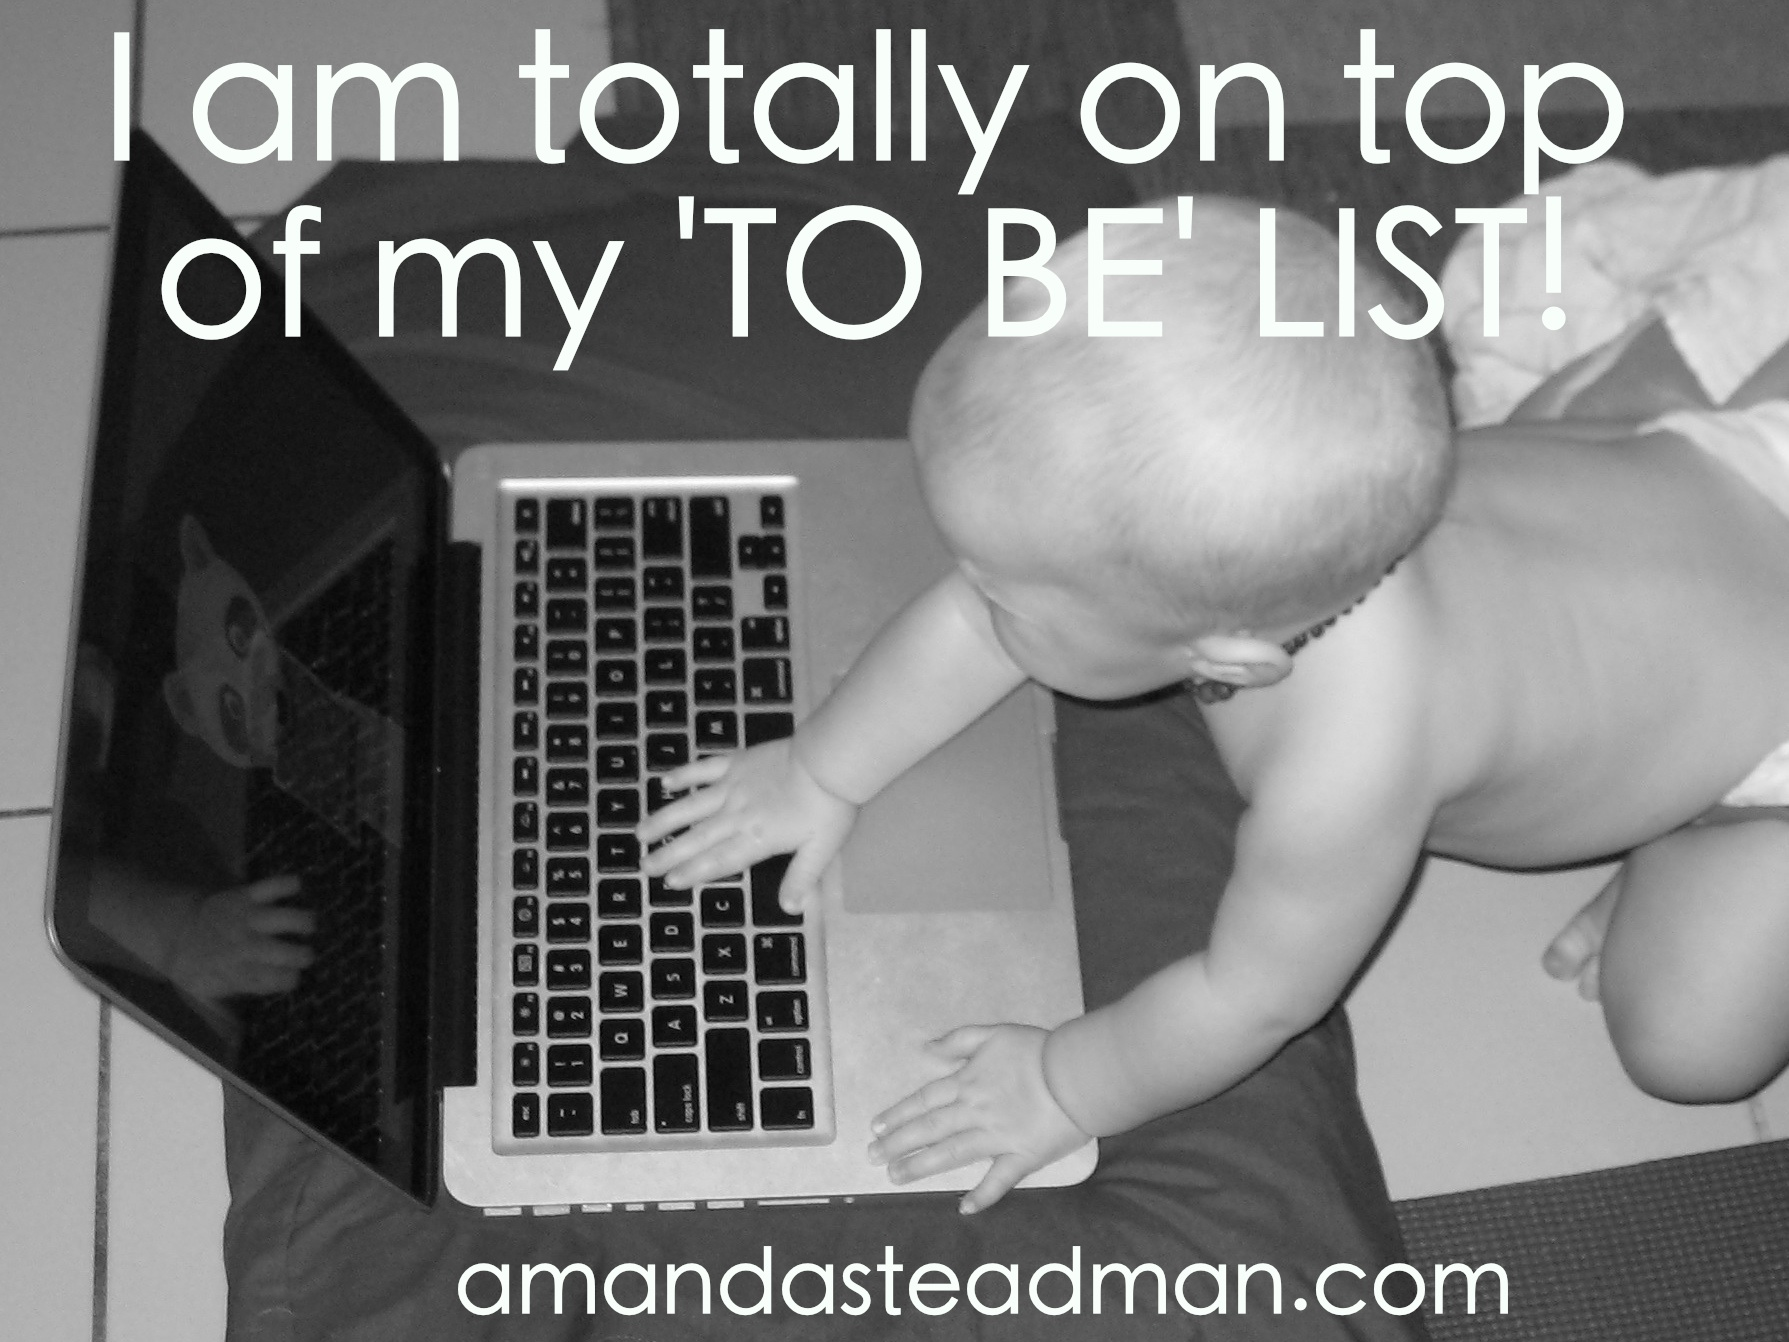 TO BE LIST pic quote